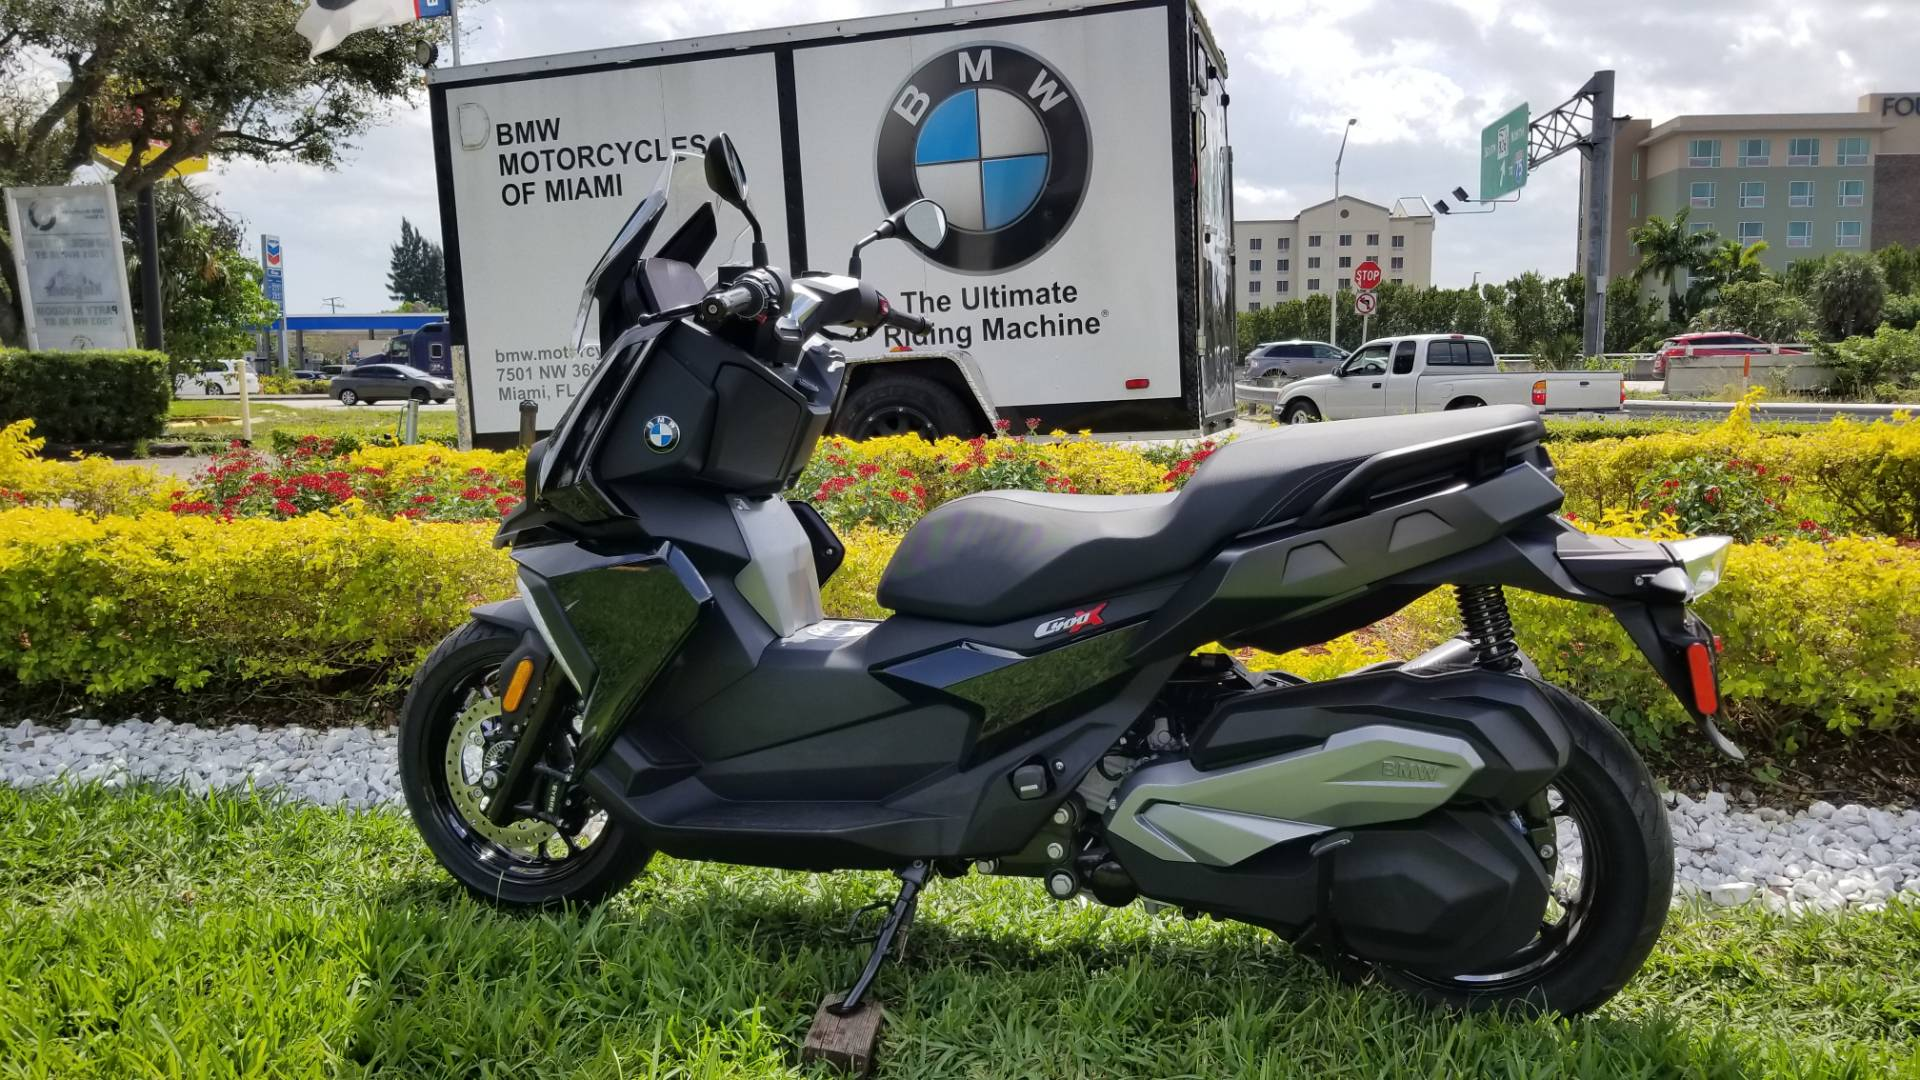 New 2019 BMW C 400 X for sale, BMW C 400X for sale, BMW Scooter, new BMW Scooter, C400X, BMW Motorcycles of Miami, Motorcycles of Miami, Motorcycles Miami, New Motorcycles, Used Motorcycles, pre-owned. #BMWMotorcyclesOfMiami #MotorcyclesOfMiami #MotorcyclesMiami - Photo 7